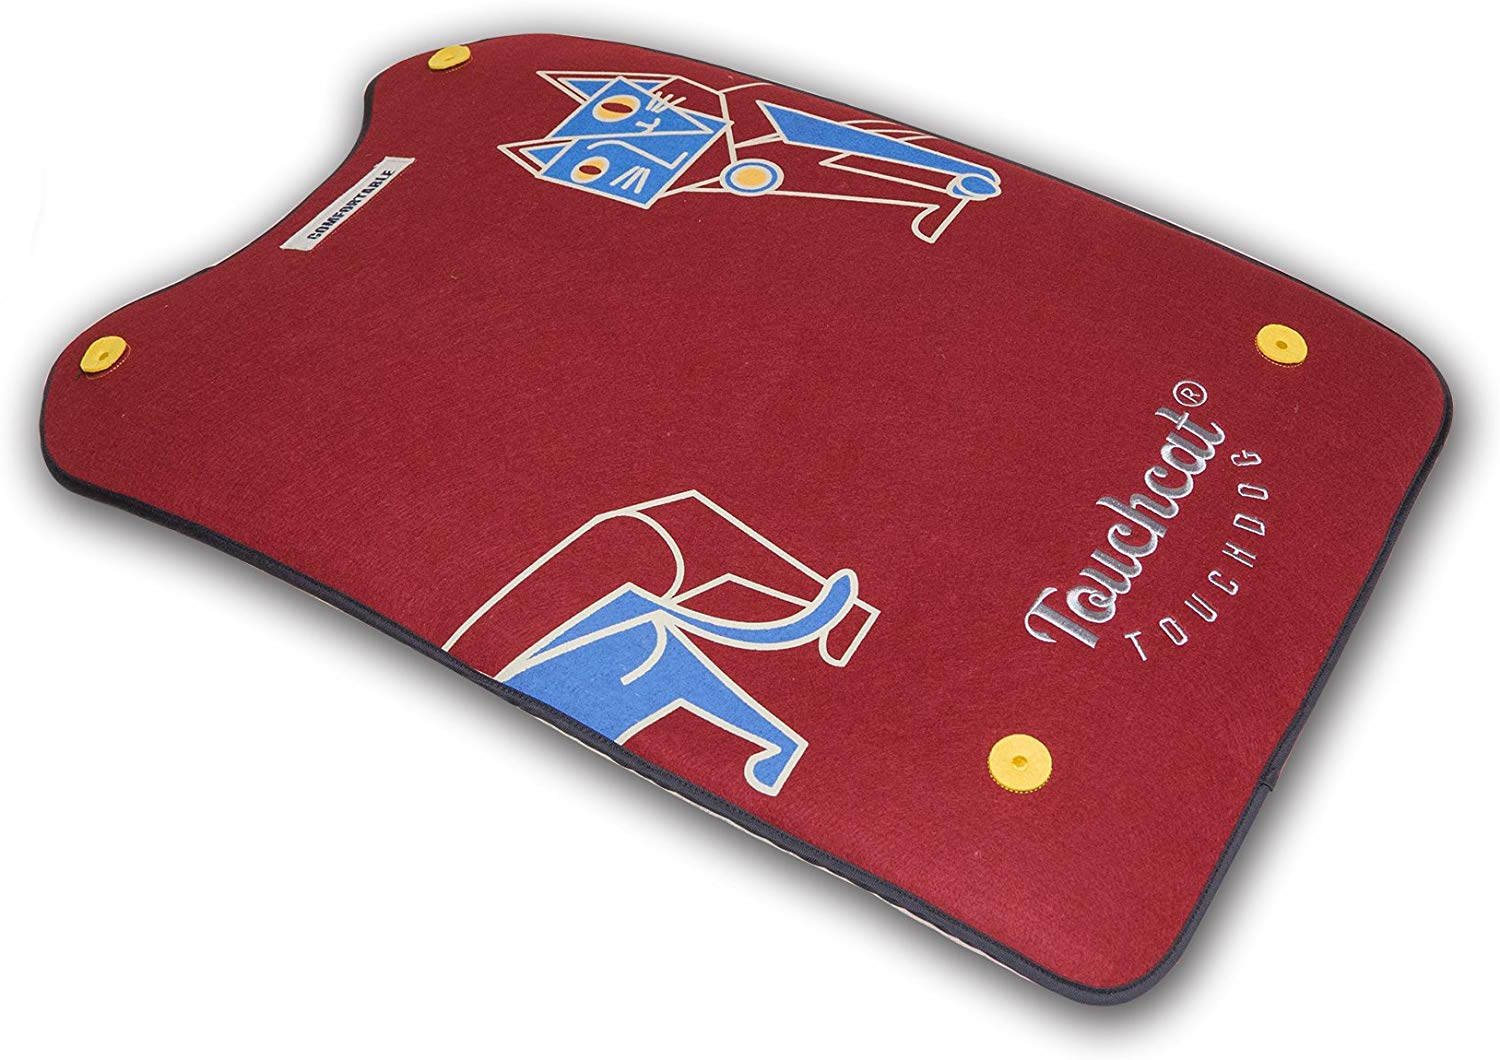 Touchcat Lamaste Travel Reversible Designer Embroidered Dog & Cat Mat, Red, Small